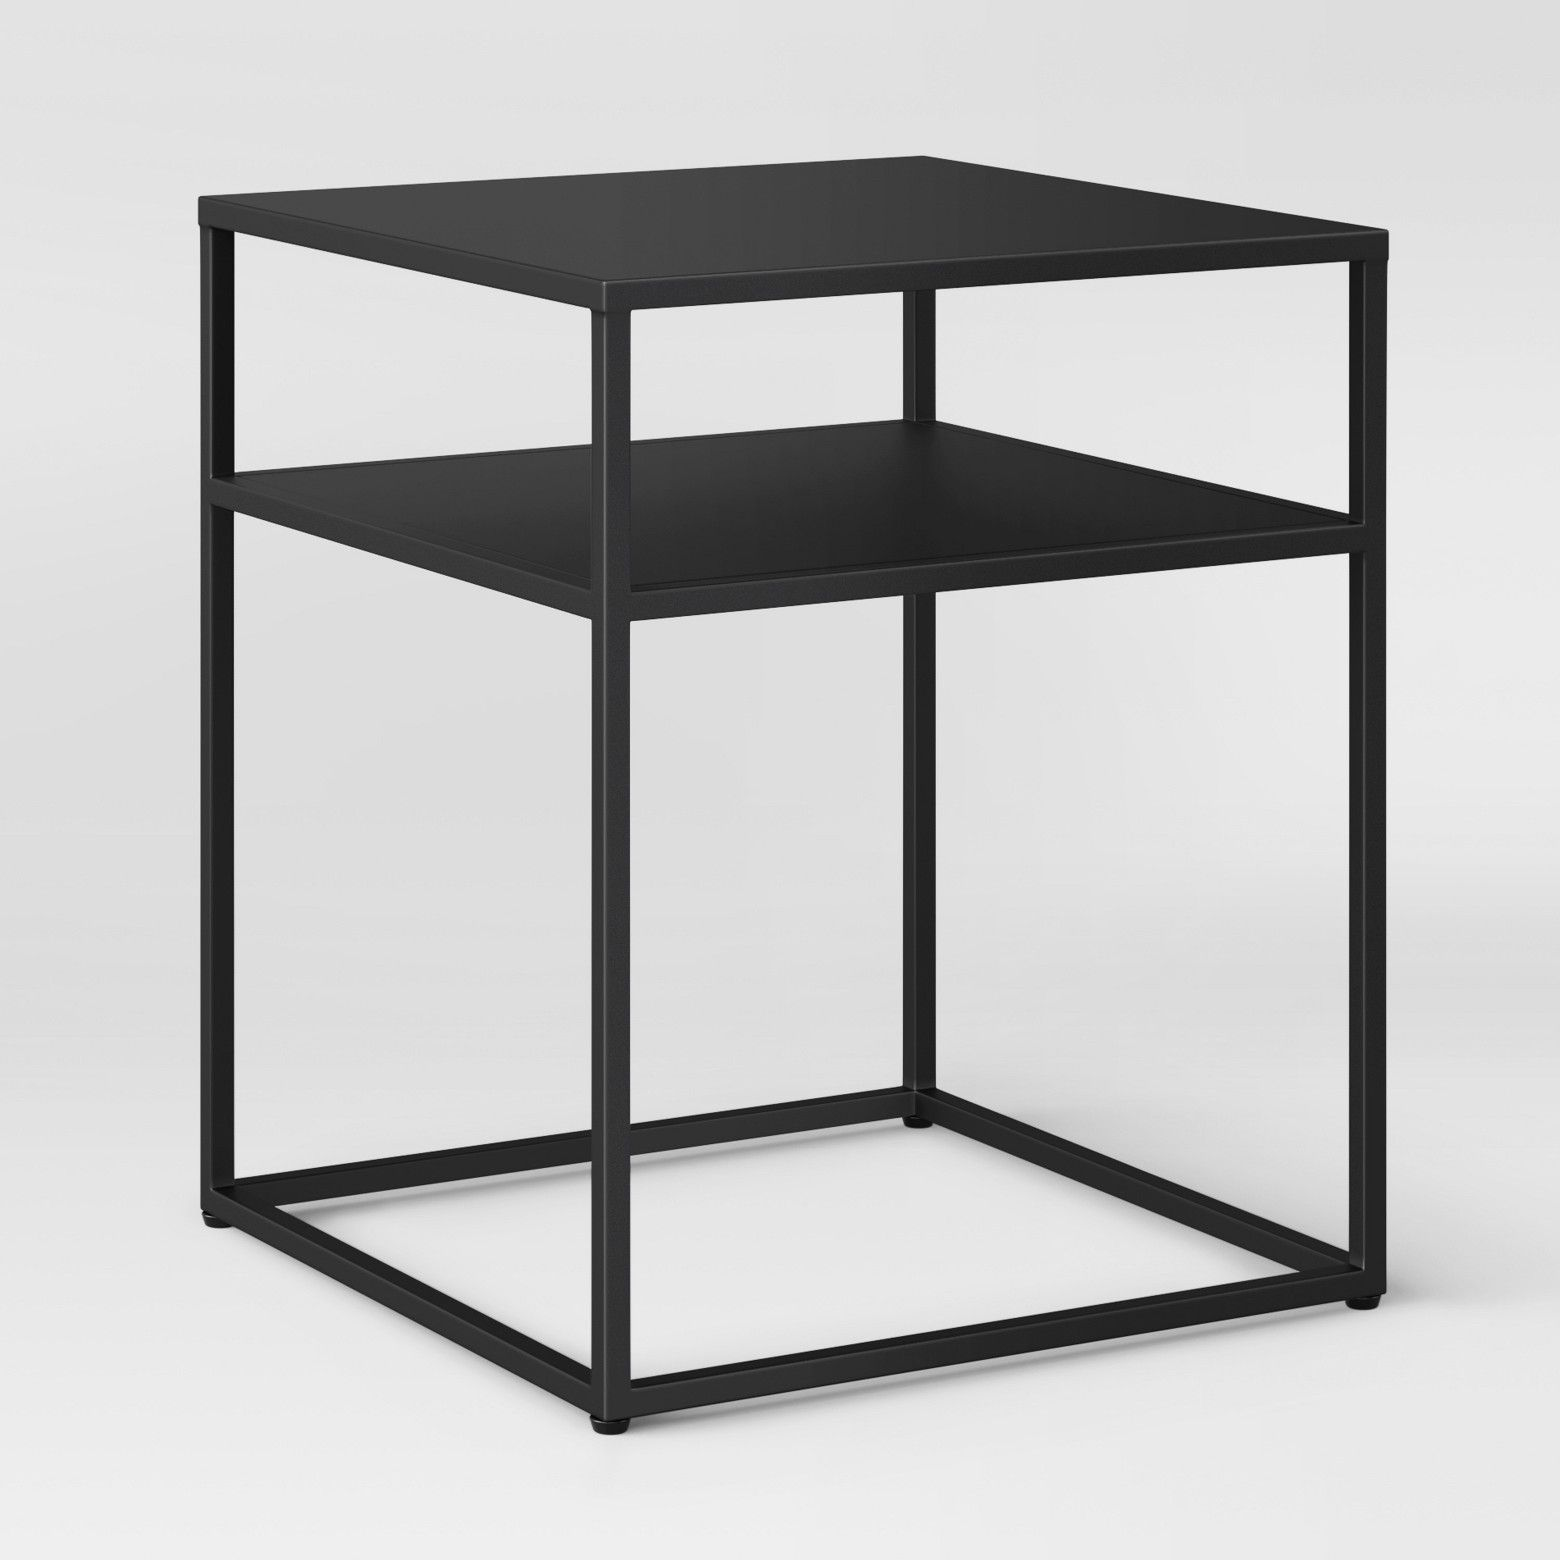 Bring Clean Lines And Modern Style Into Your Space With The Metal End Table From Project 62 Metal End Tables Black End Tables Square Coffee Tables Living Room